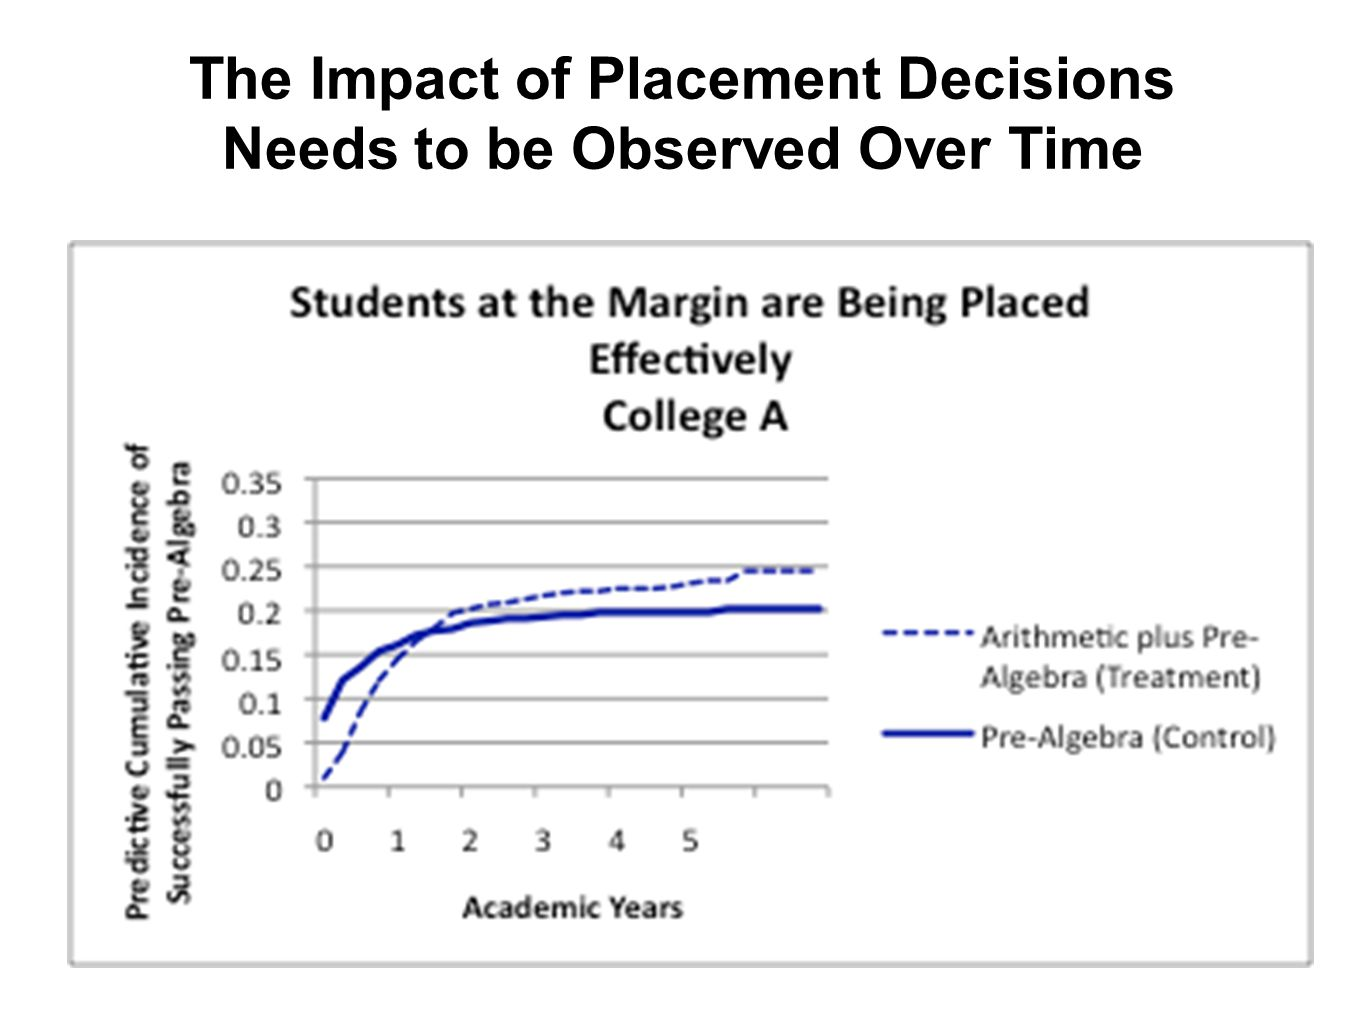 The Impact of Placement Decisions Needs to be Observed Over Time